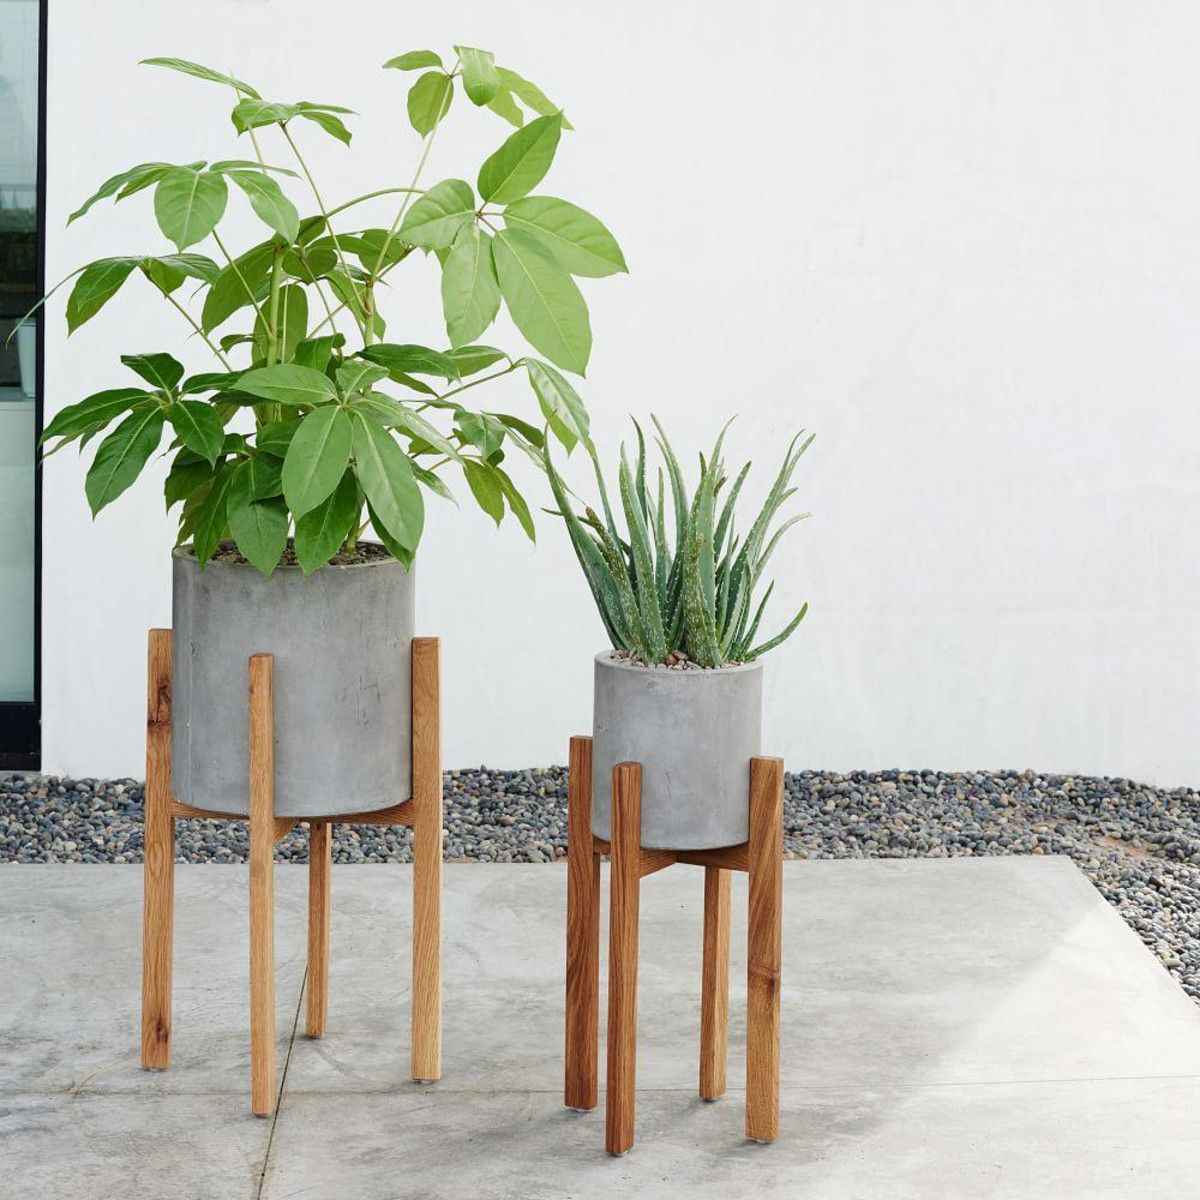 Contemporary Indoor Plants Modern Wood Leg Planter  Cylinder  Planters Woods And Modern